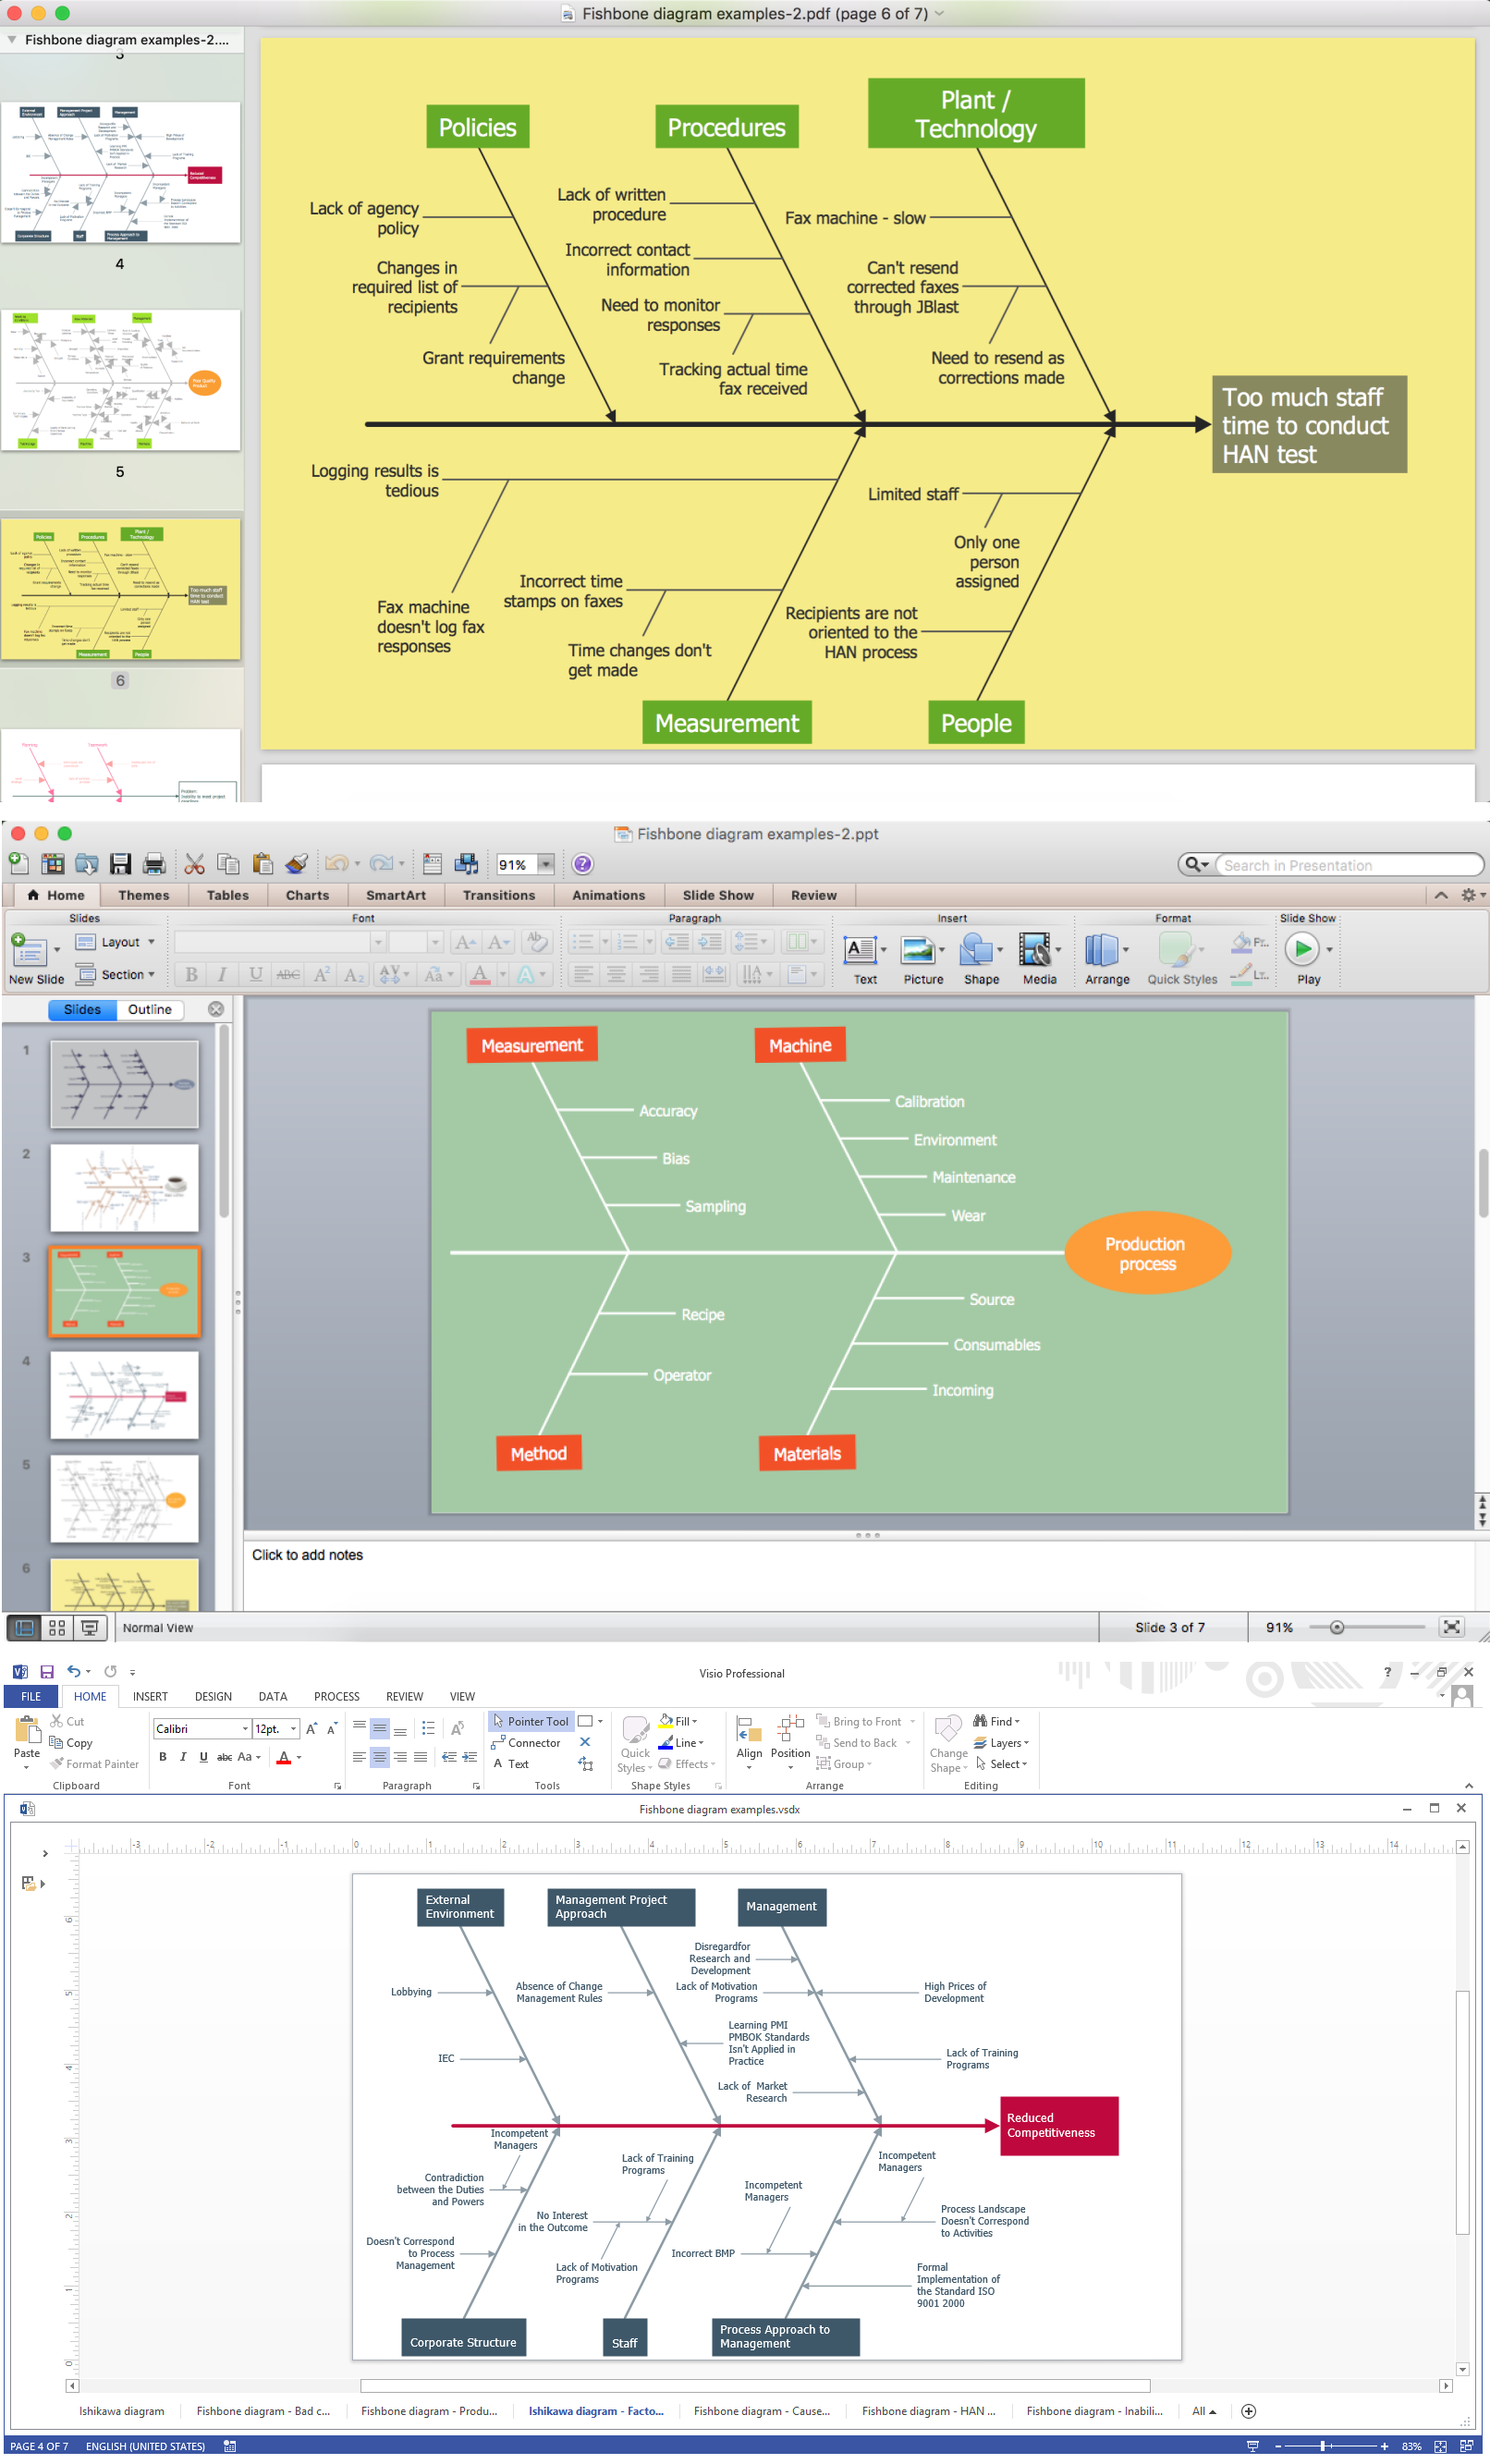 Cause and effect diagrams export fishbone diagram to pdf ppt visio ccuart Image collections